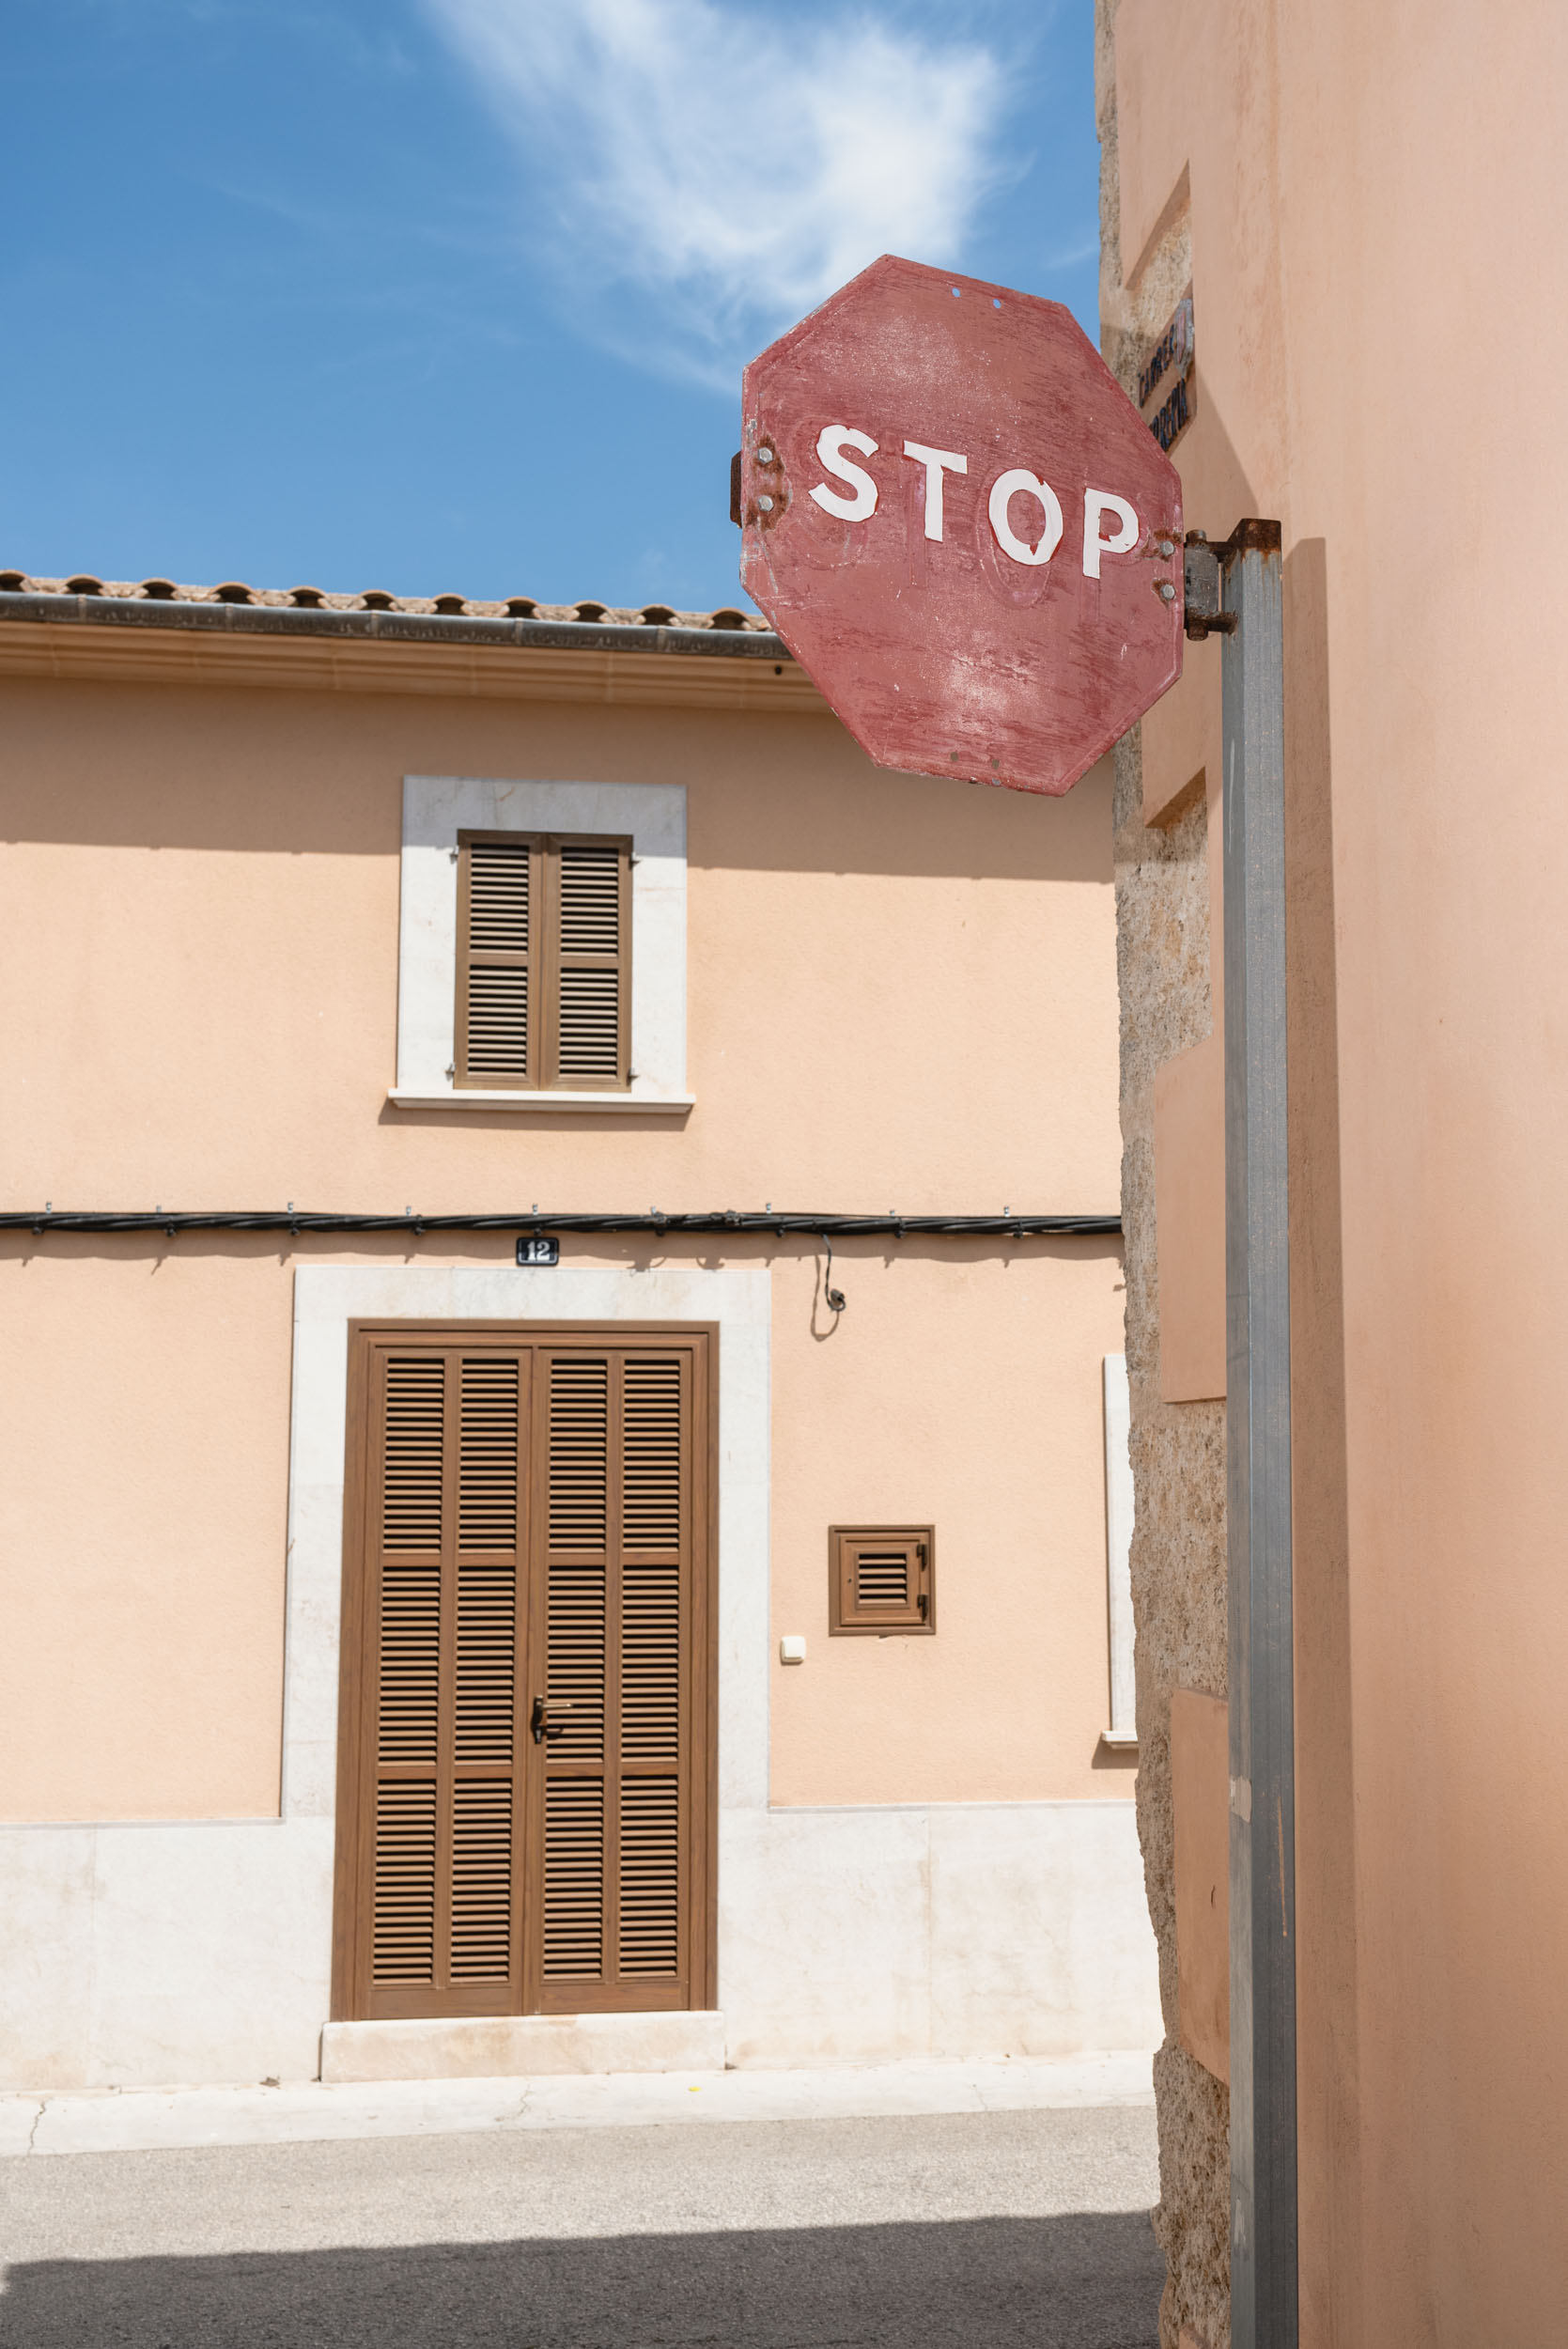 Stop sign in Sineu, Spain